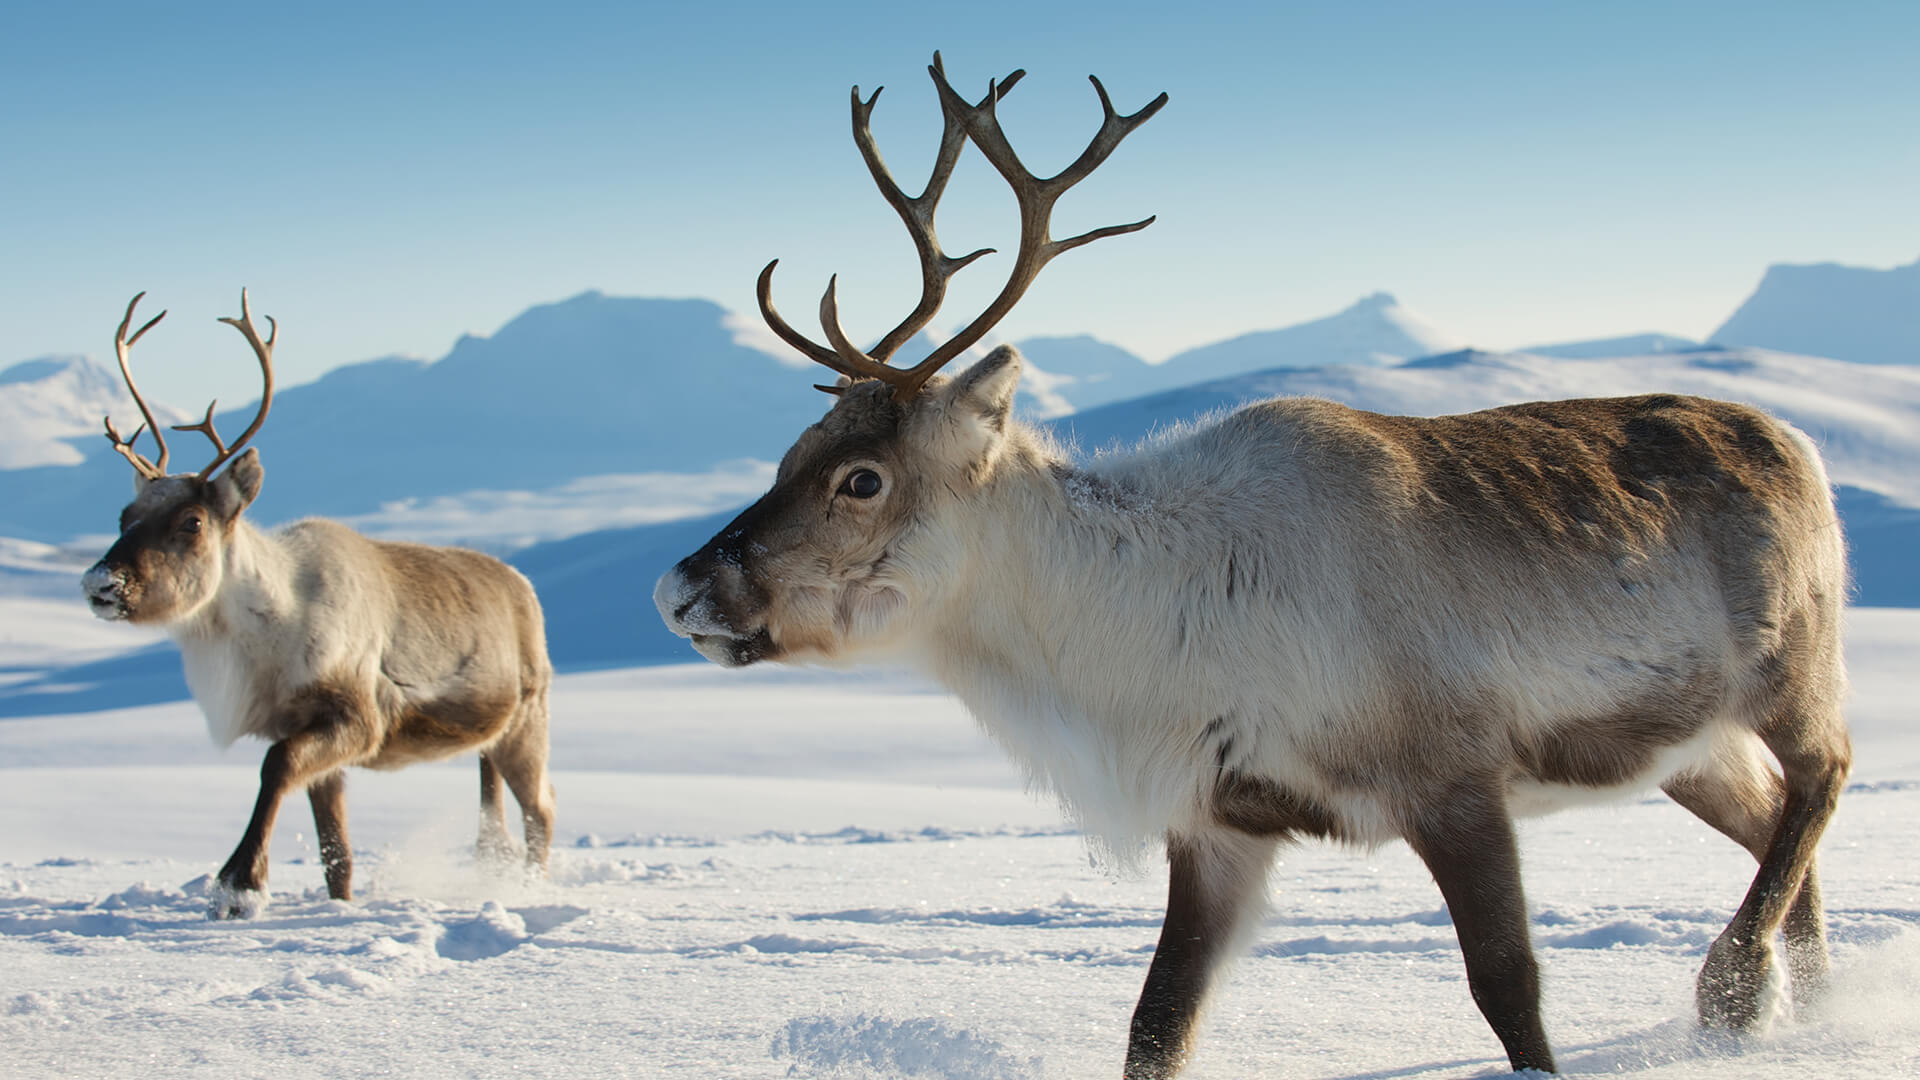 two reindeer walking together